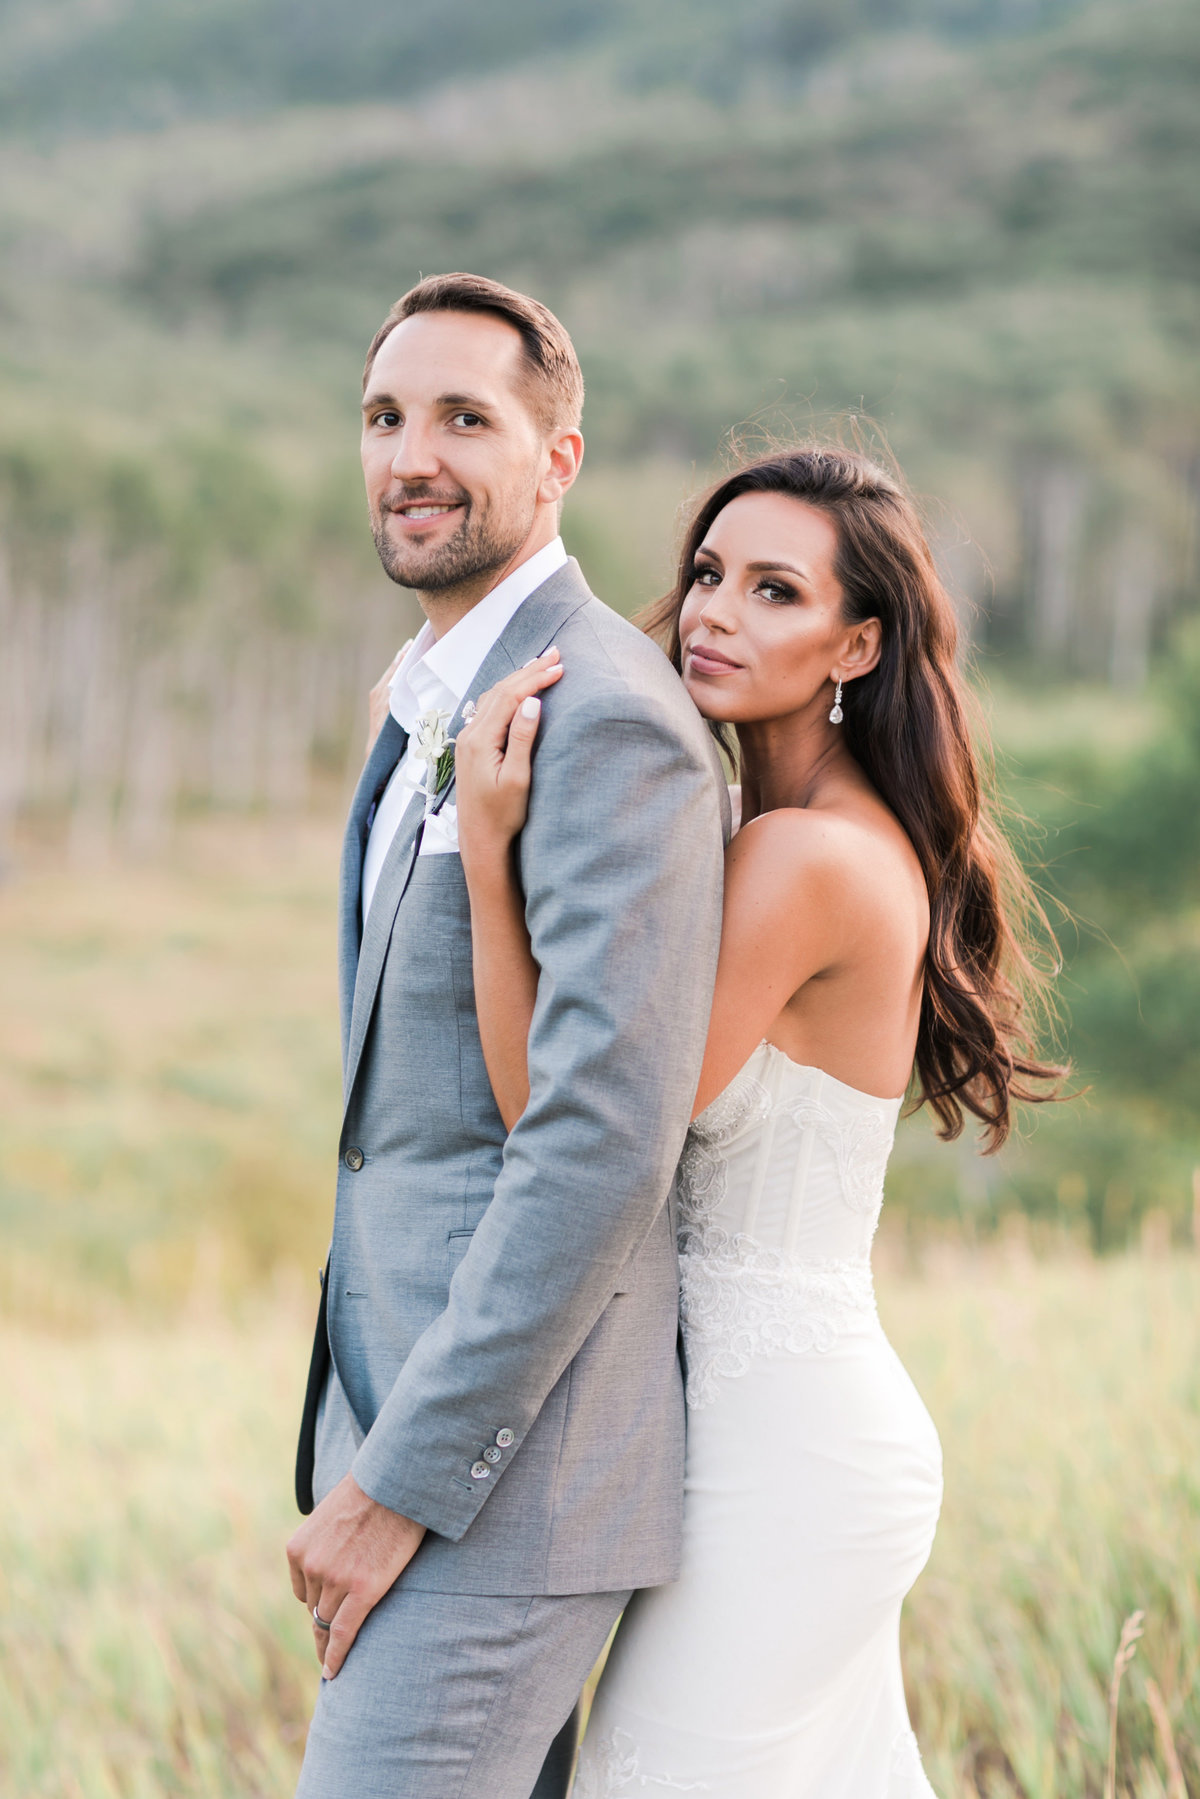 Kari_Ryan_Anderson_Colorado_Outdoor_Chapel_Wedding_Valorie_Darling_Photography - 121 of 126